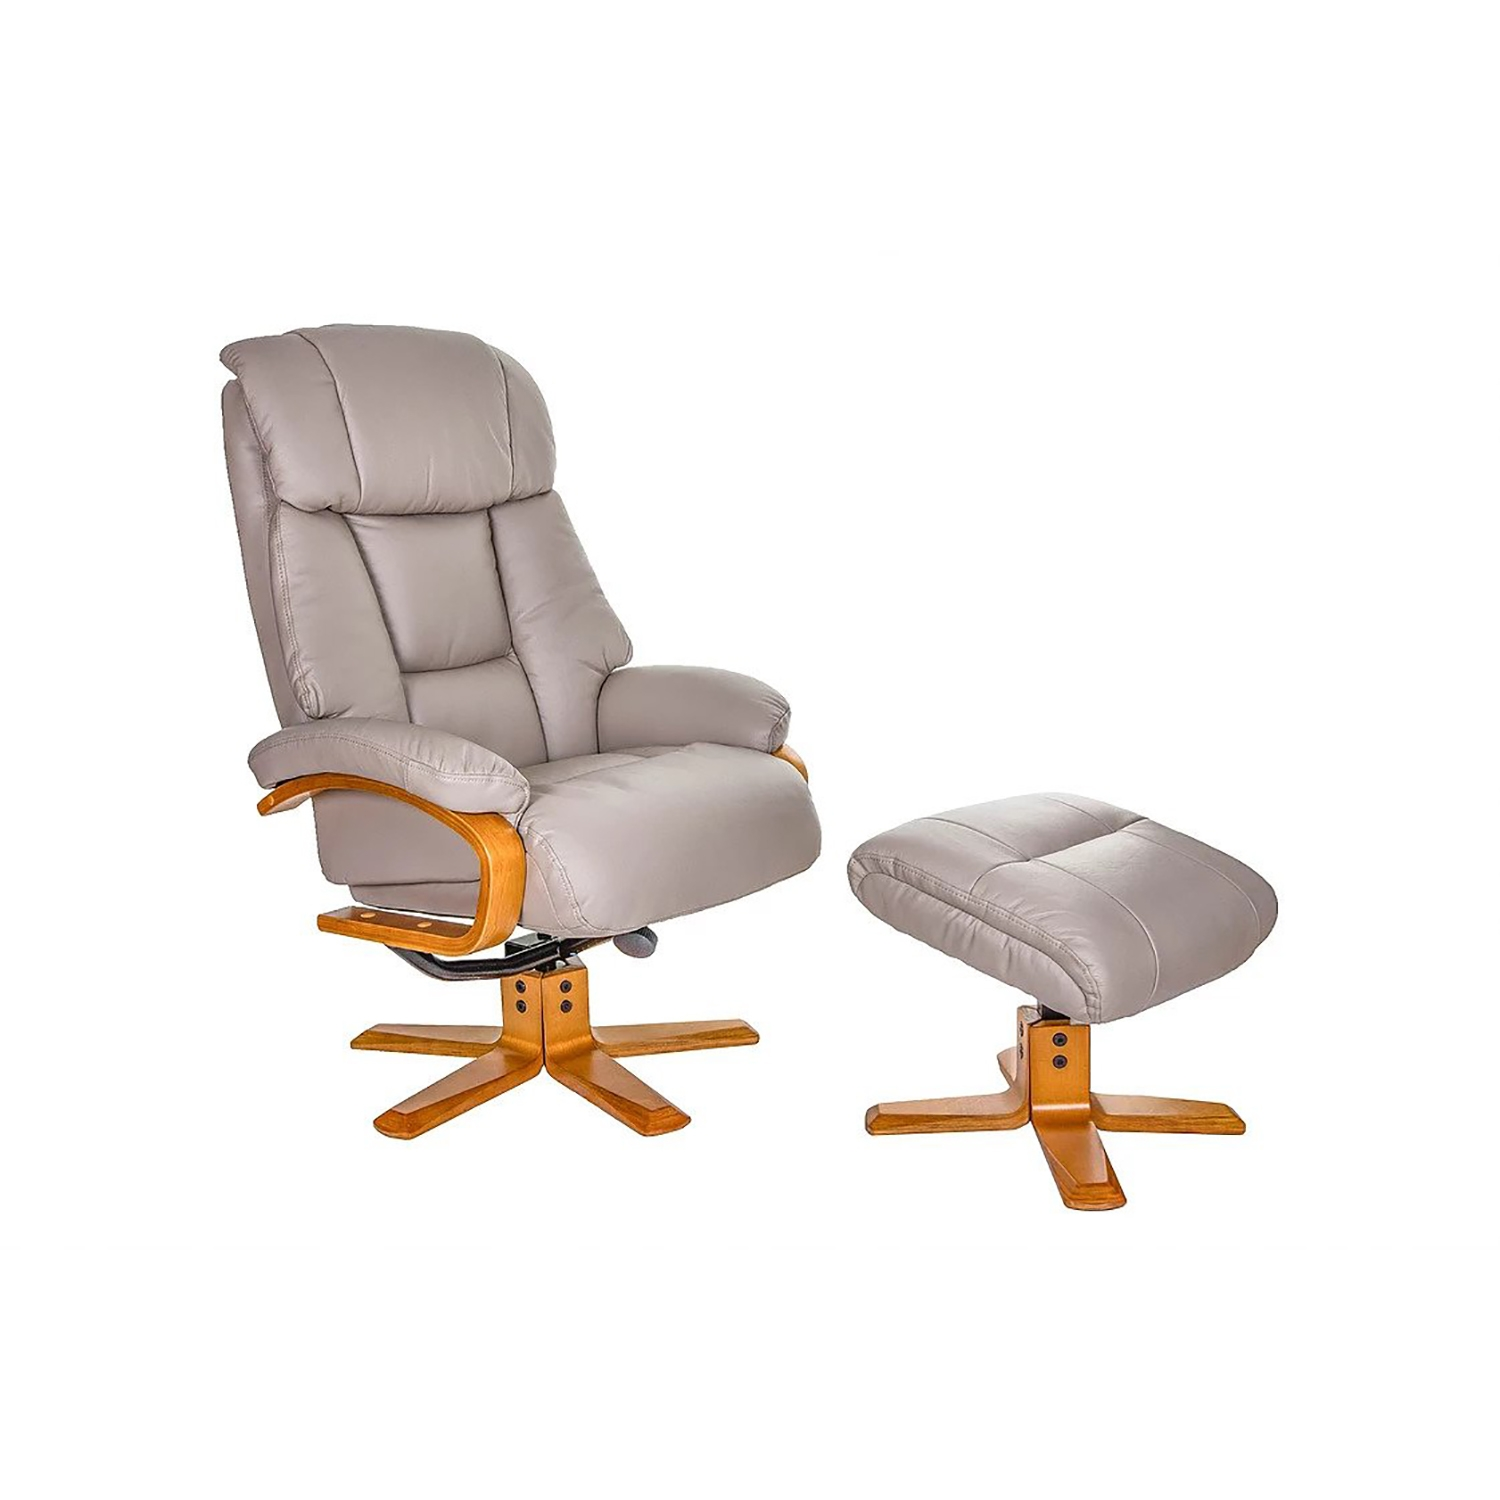 Image of Casa Bruges Faux Leather Recliner & Footstool, Pebble